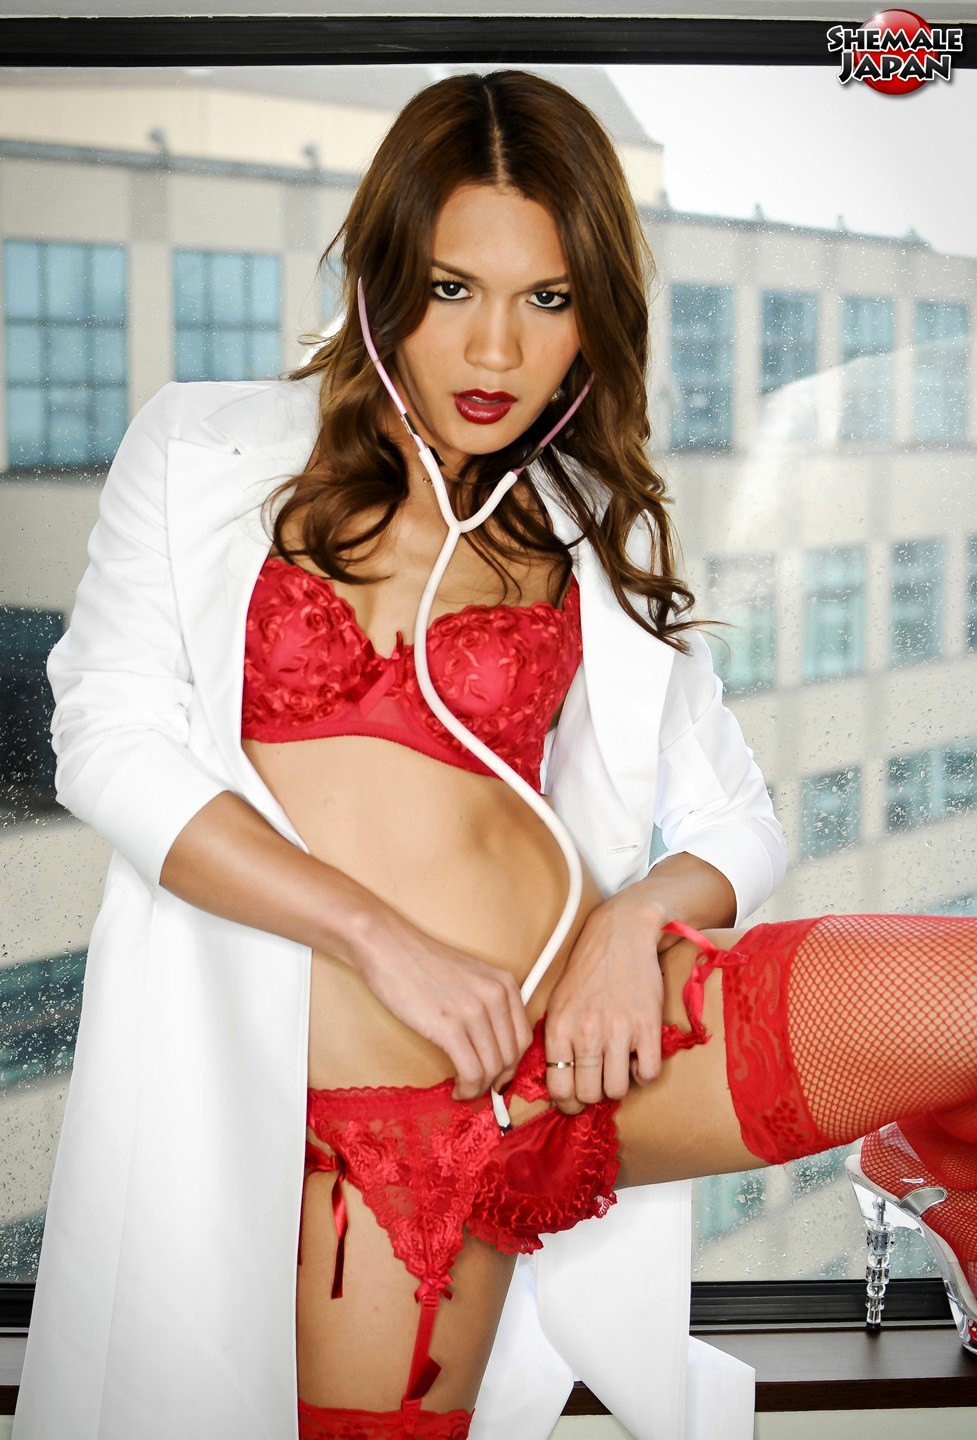 seductive newhalf nurse rion kawasaki has red panties